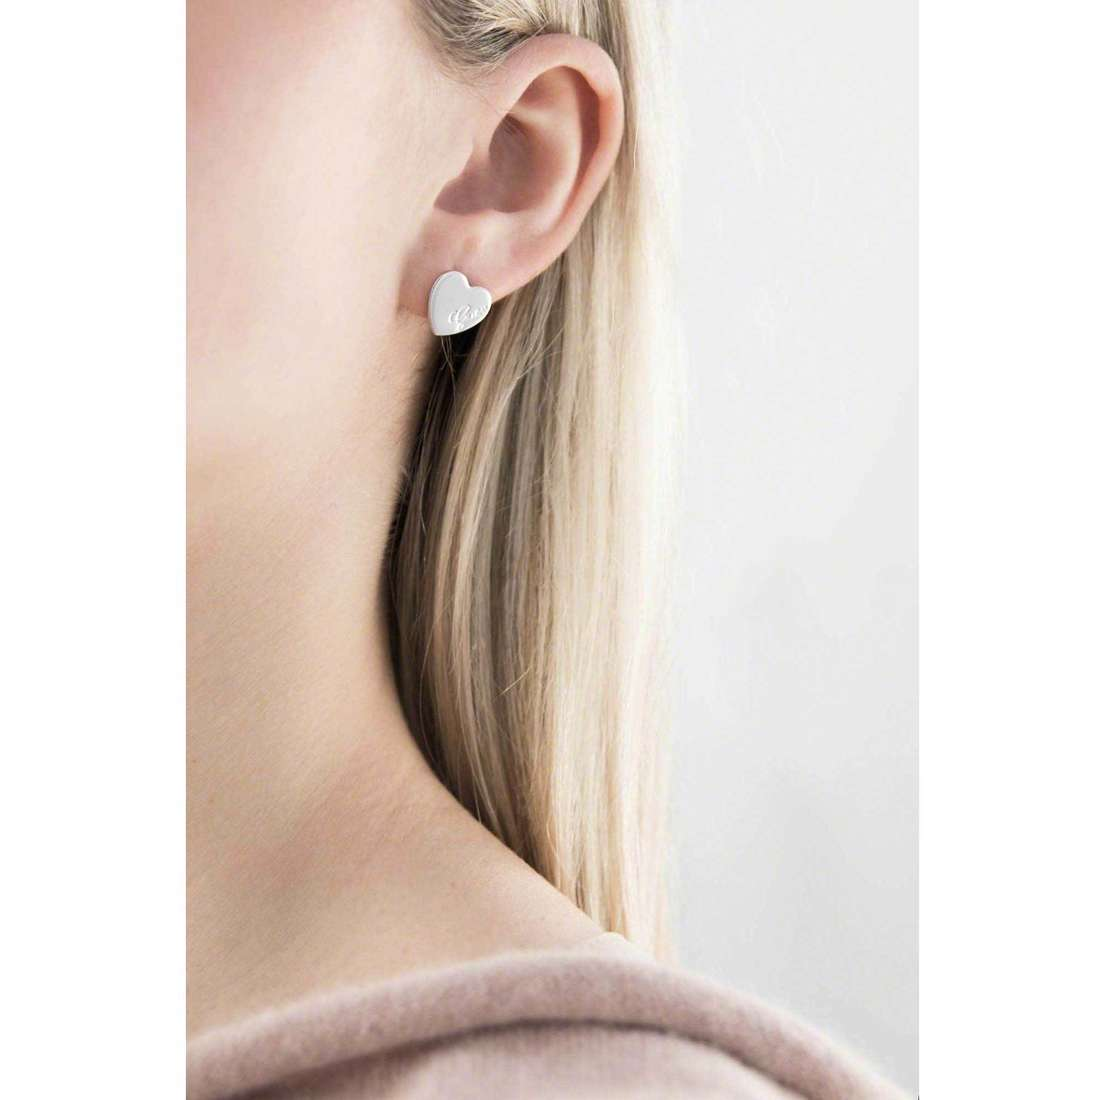 Guess boucles d'oreille Heartbeat femme UBE61053 indosso